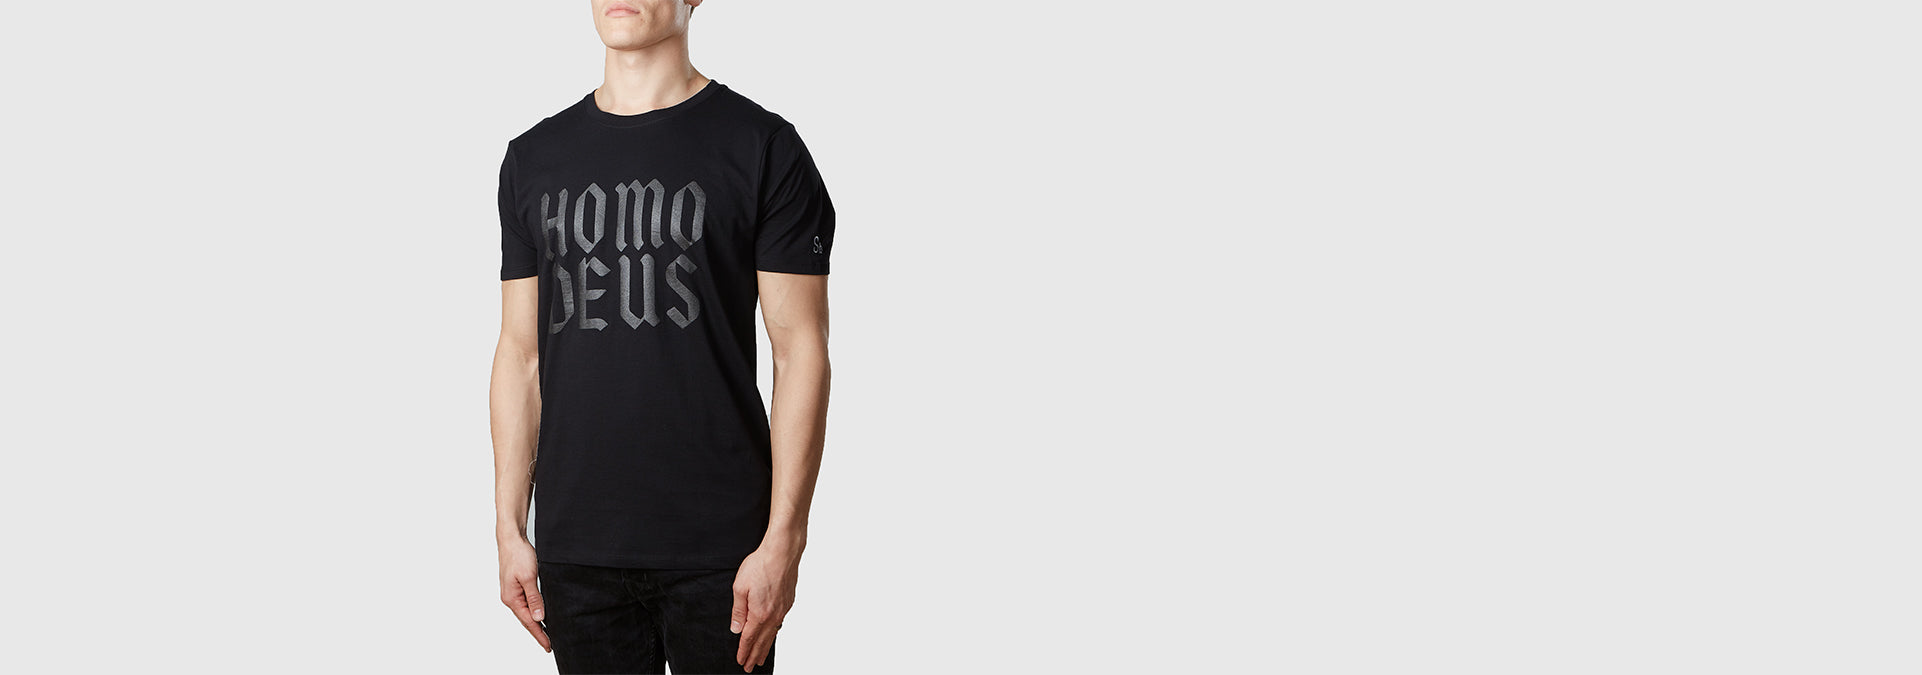 Homo Deus Organic Cotton T-Shirt Black